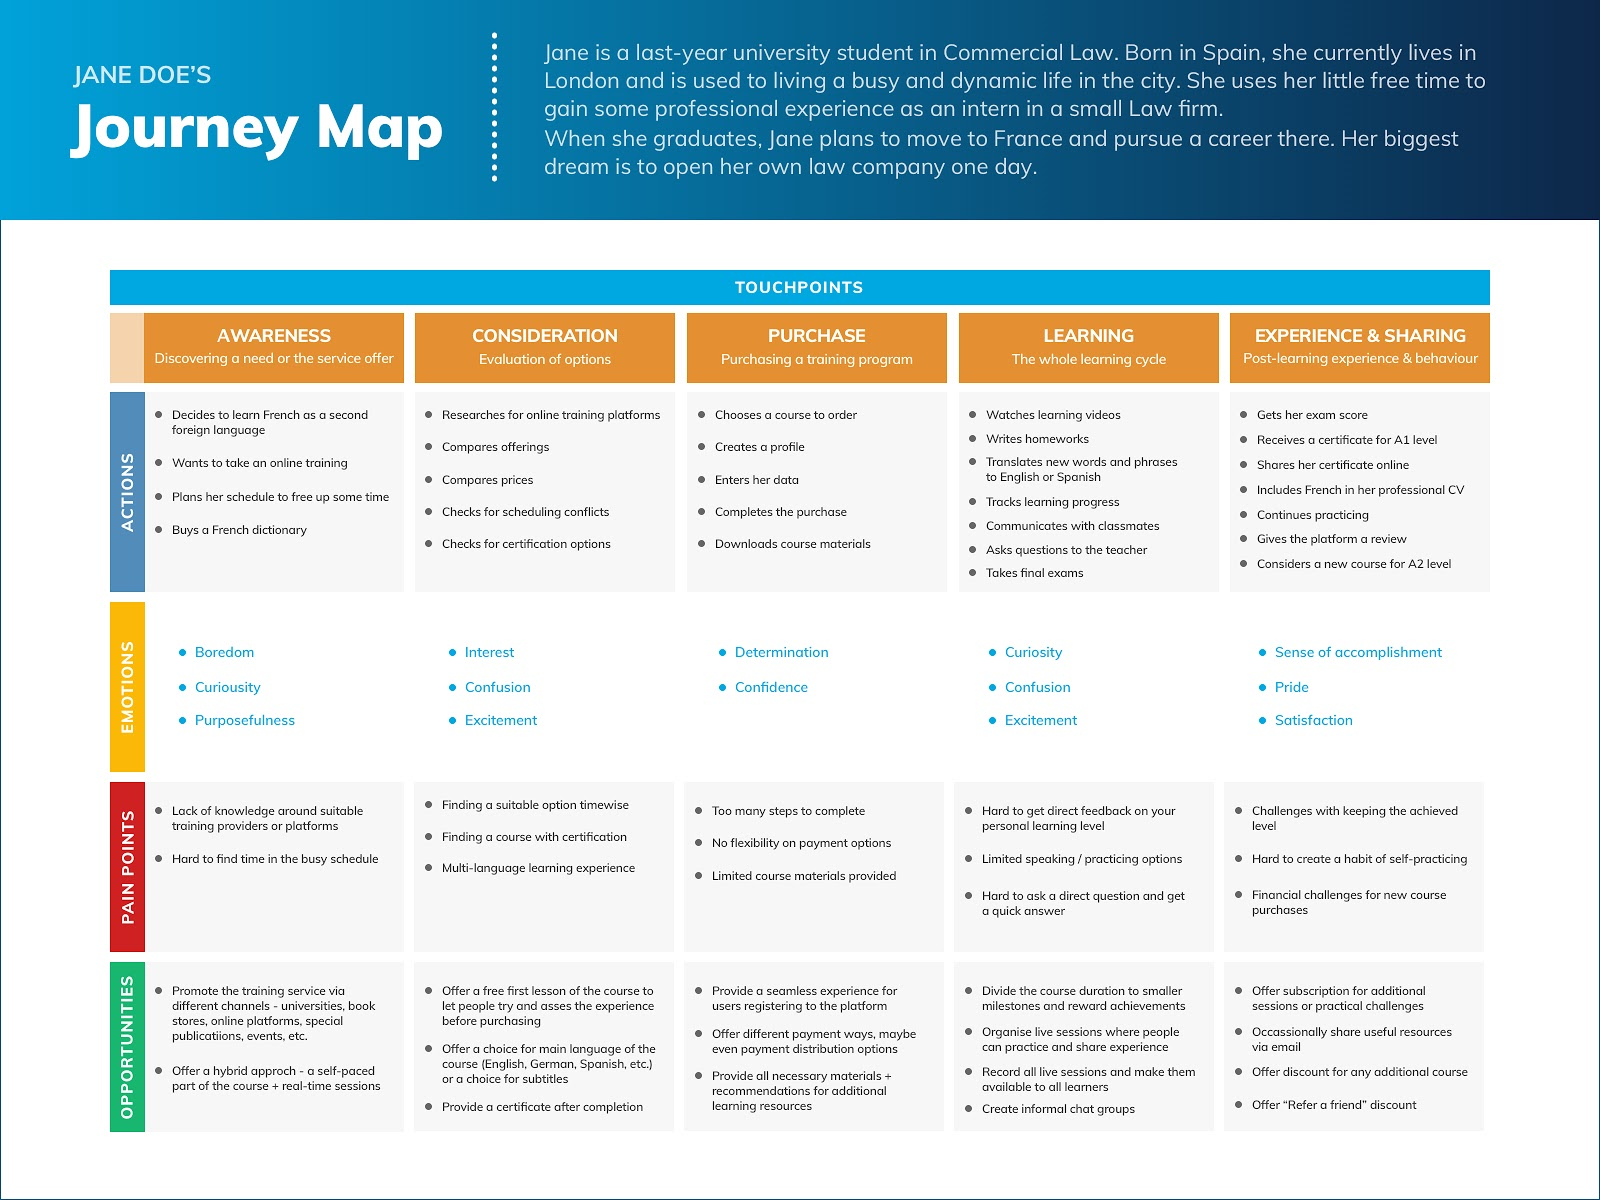 The customer journey map for our example scenario